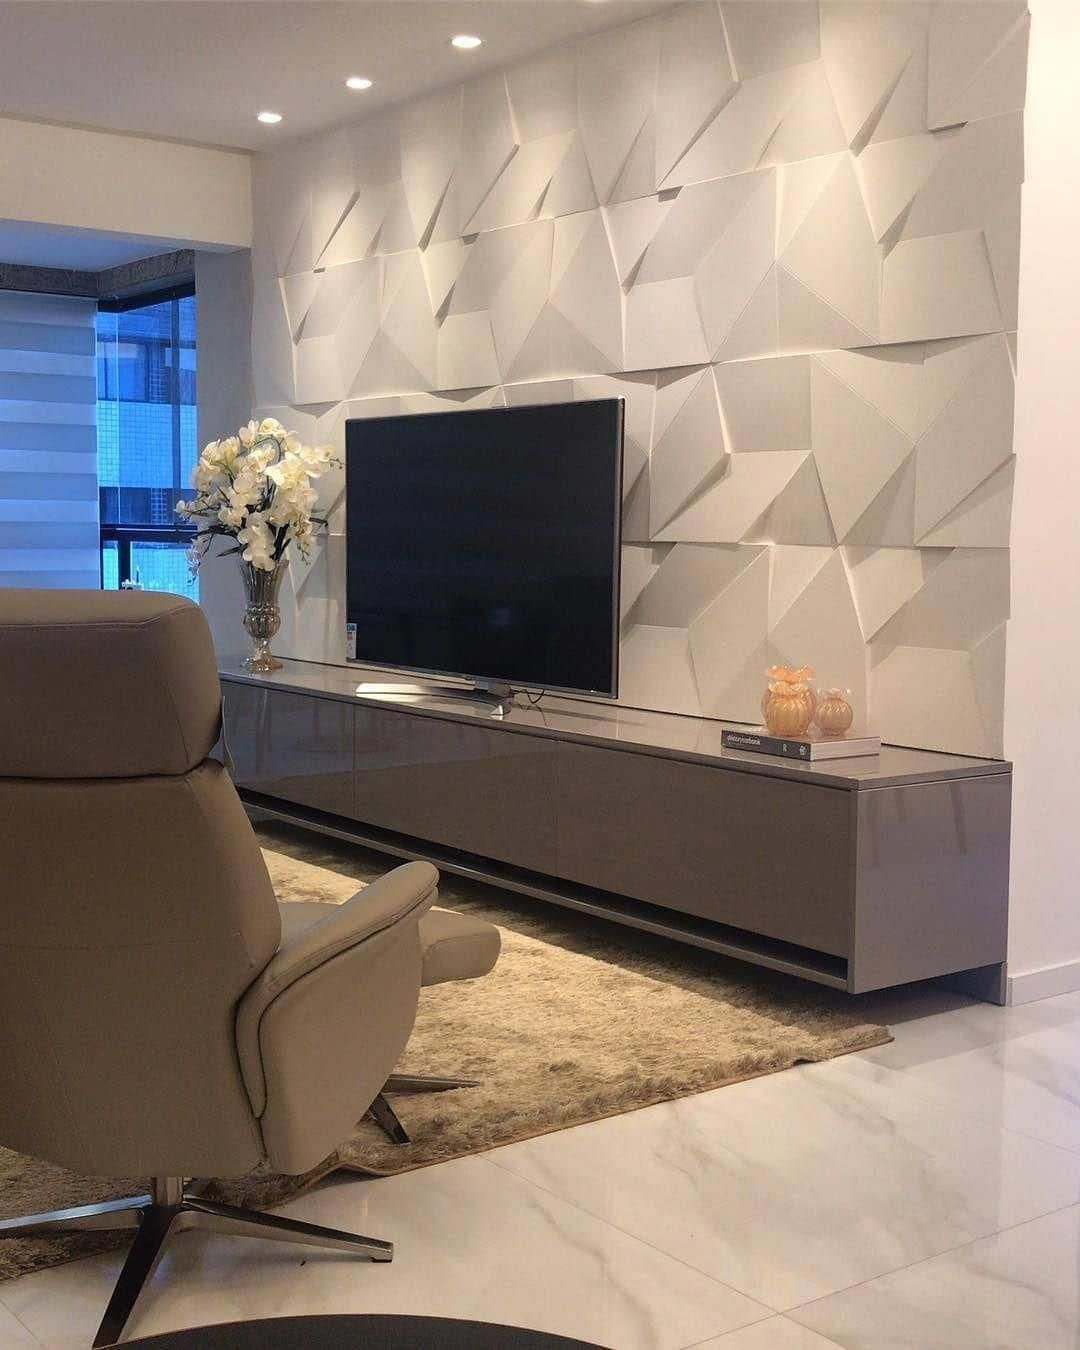 La Apartments Cheap: Que Home Theater Lindo Com Este Revestimento 3D, Né?! O